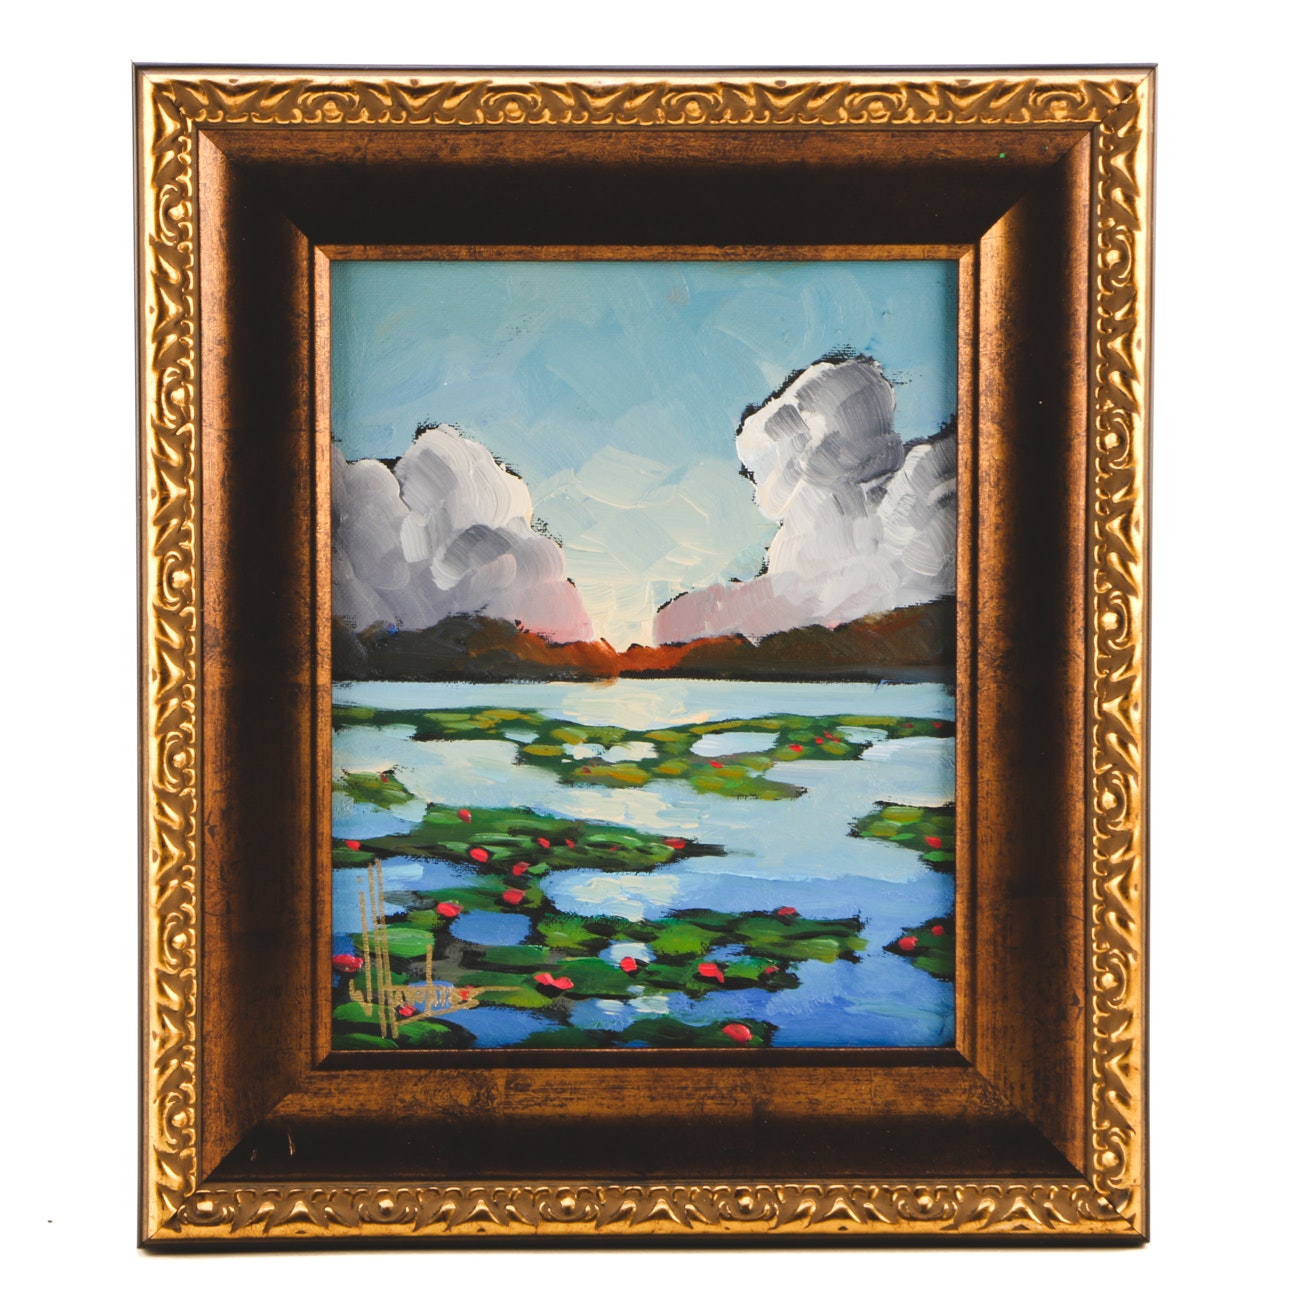 William Hawkins Oil Painting on Canvas Board of Lake with Water Lilies